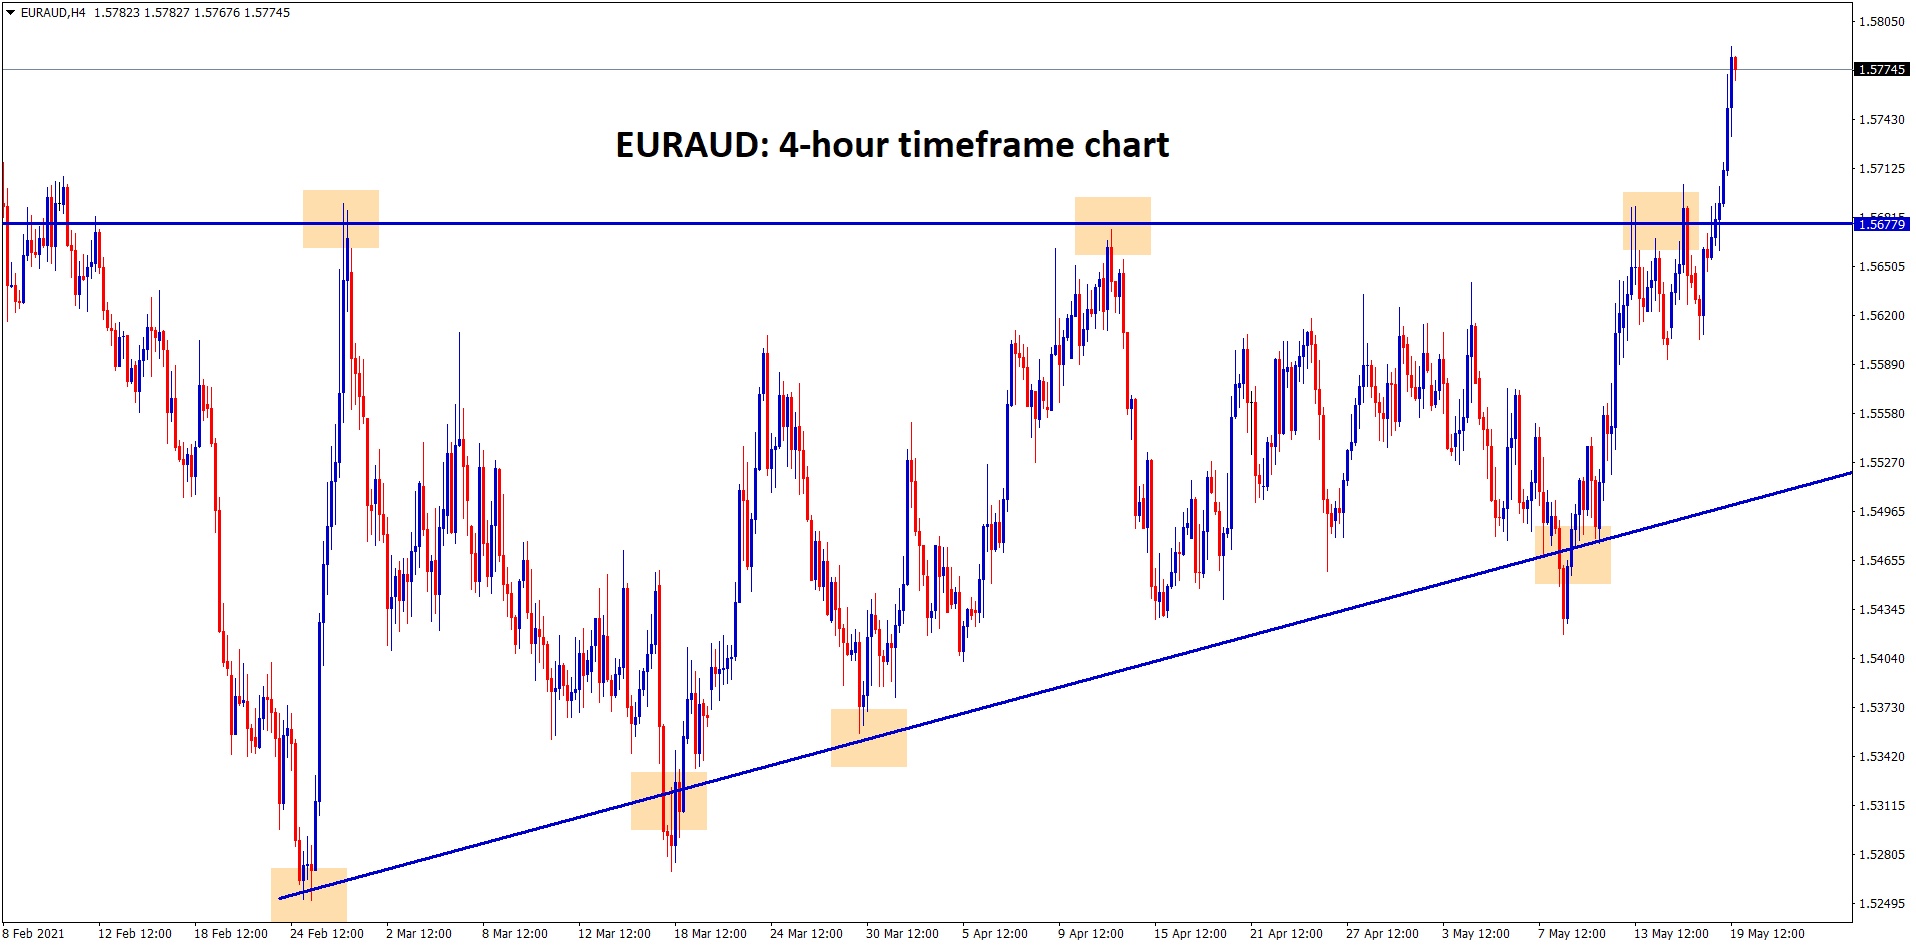 EURAUD has broken the top level of the Ascending Triangle in the 4 hour timeframe chart.